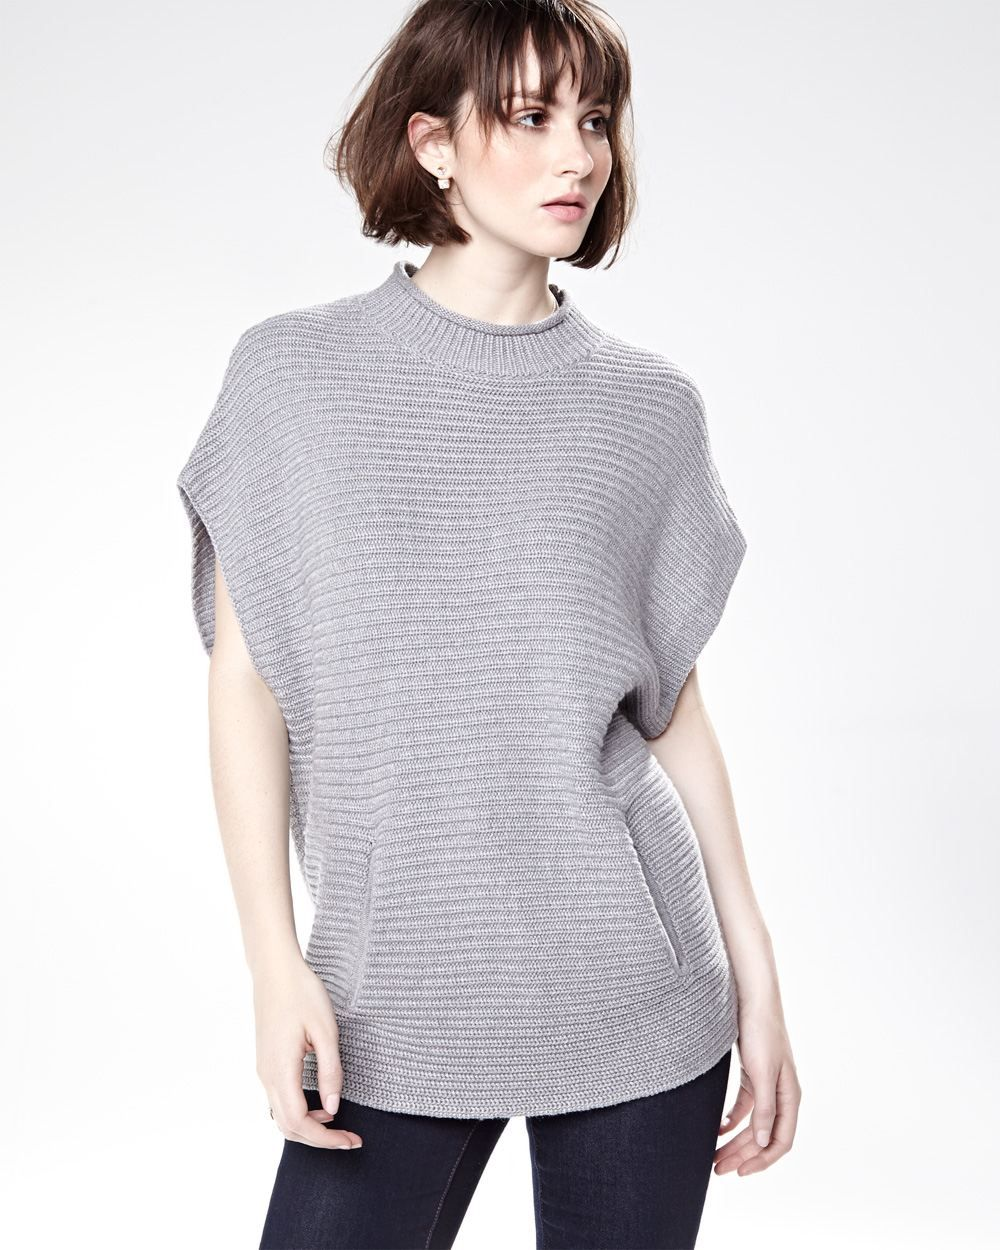 Ribbed short sleeve sweater | Fall Fashion Wants | Pinterest ...